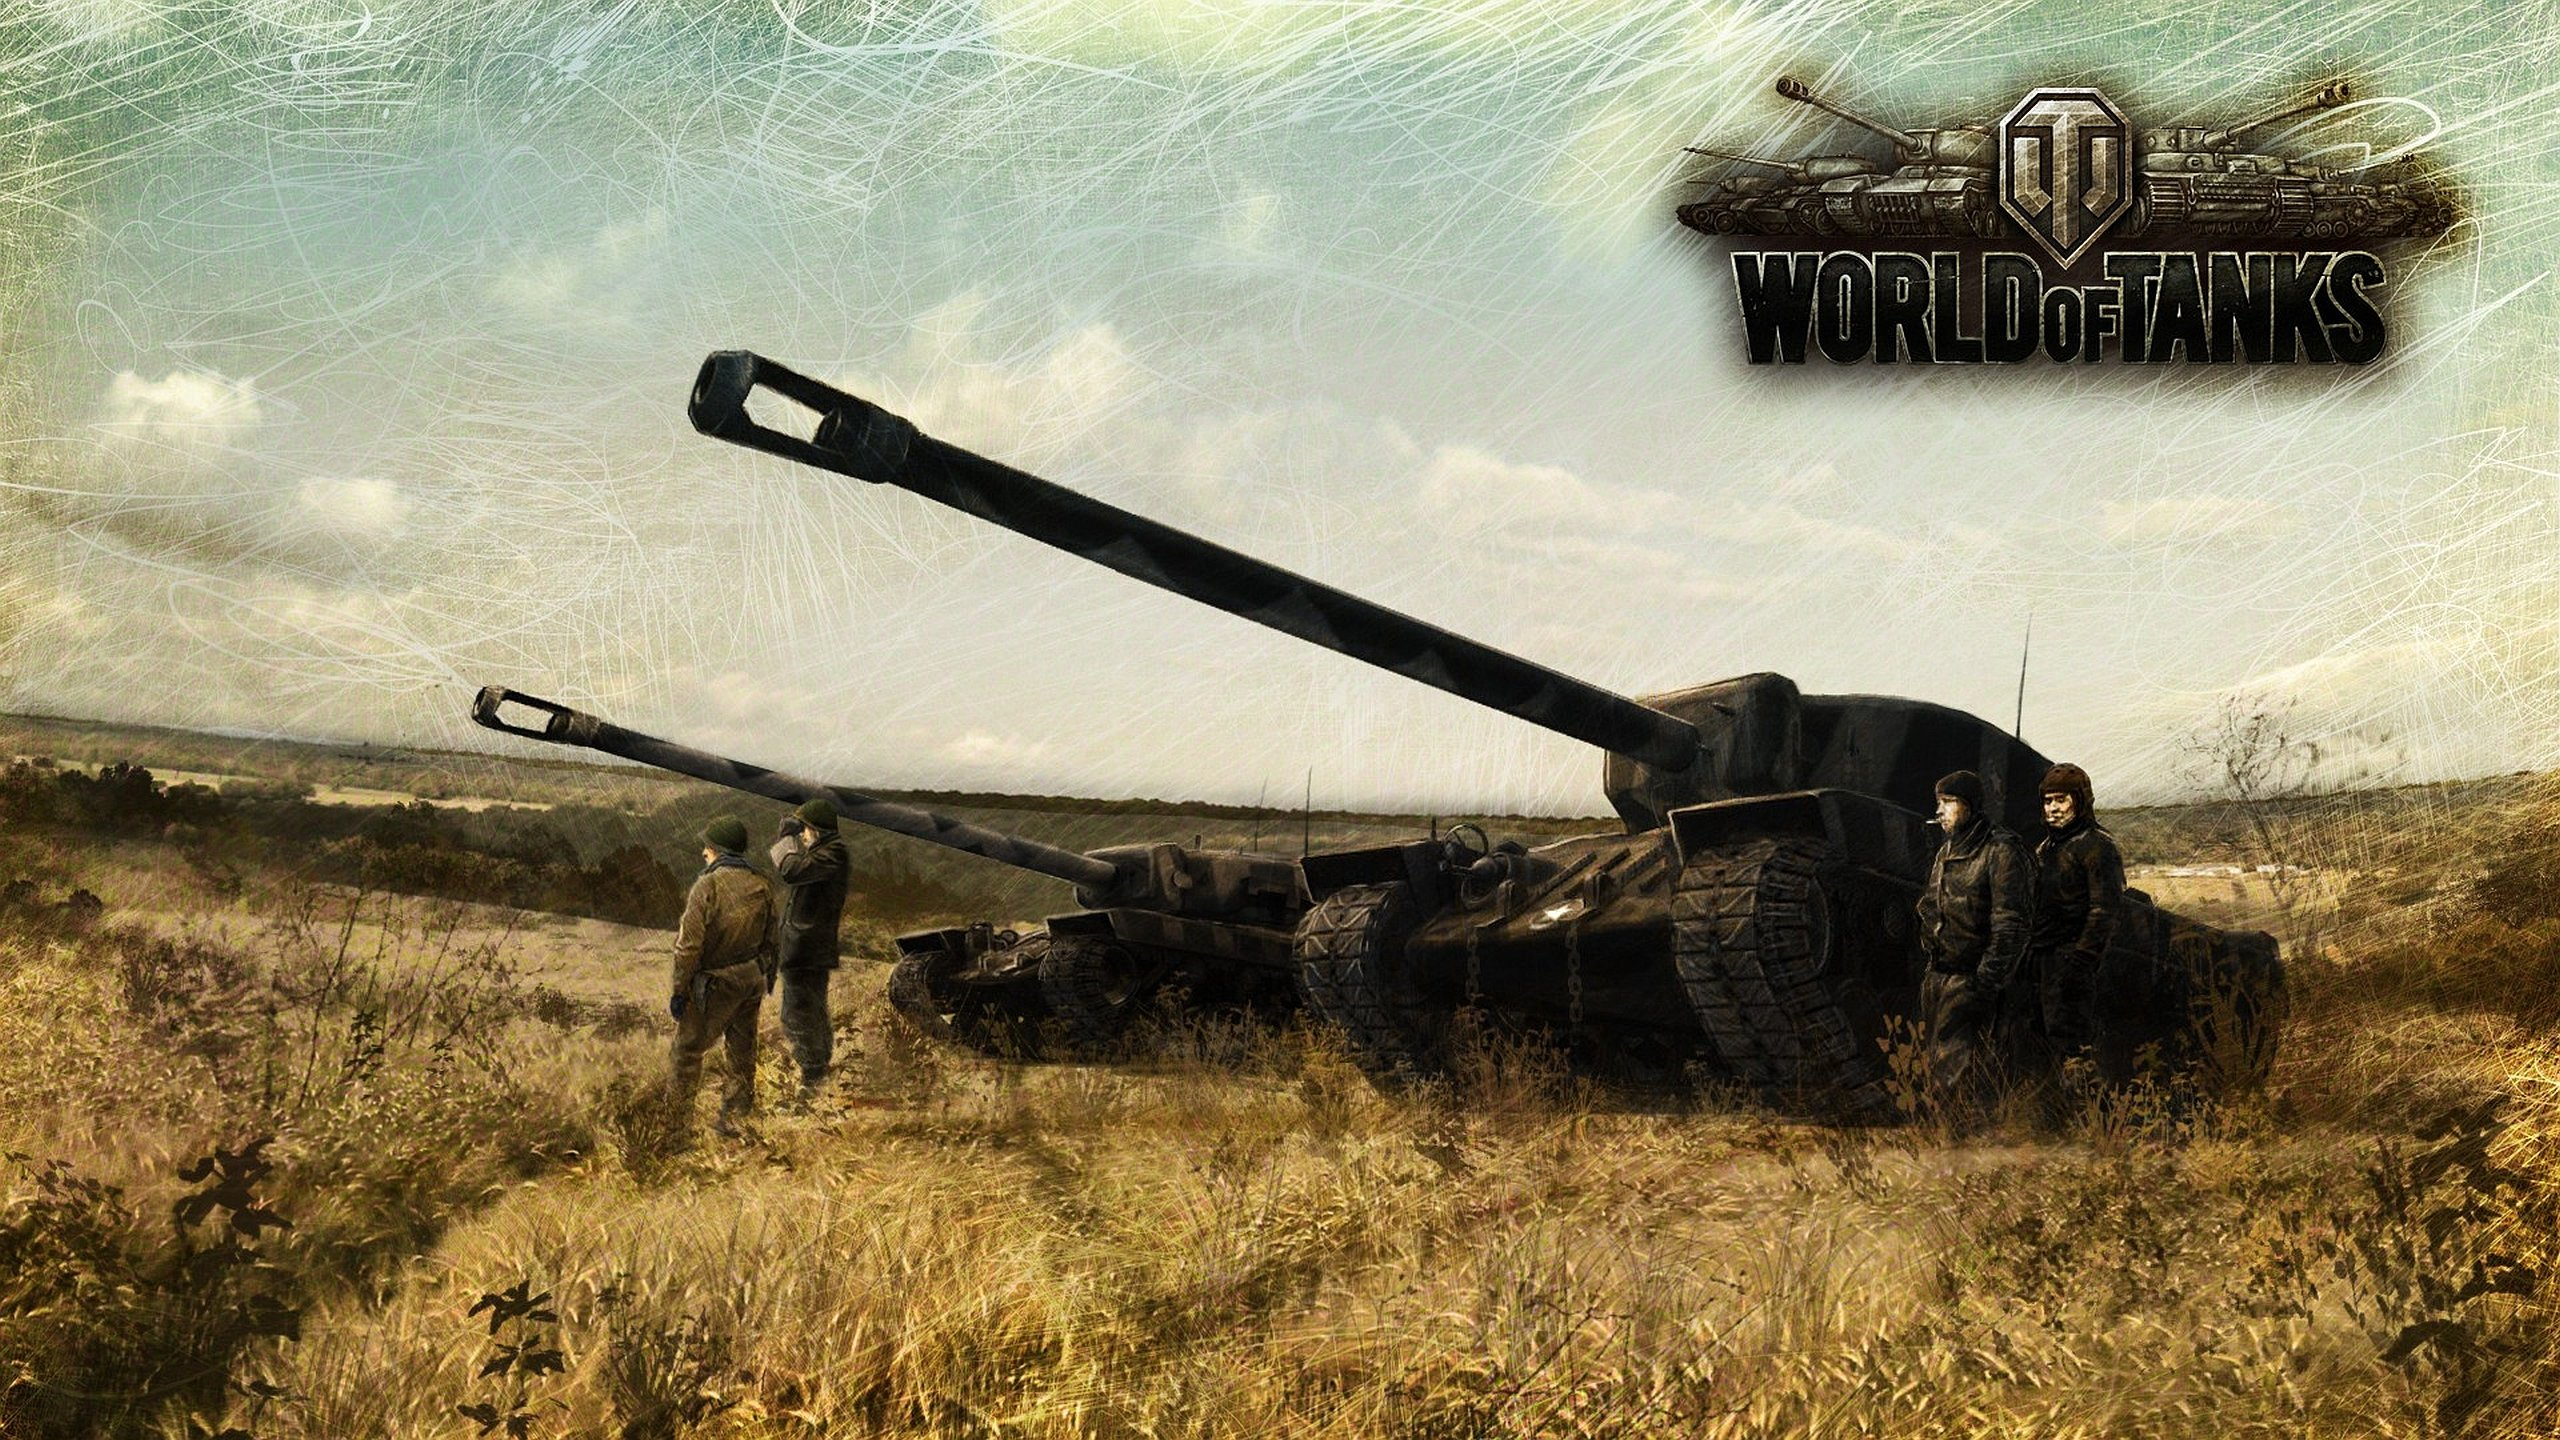 Awesome World Of Tanks Wot Free Wallpaper Id45122 For Hd 2560x1440 Pc